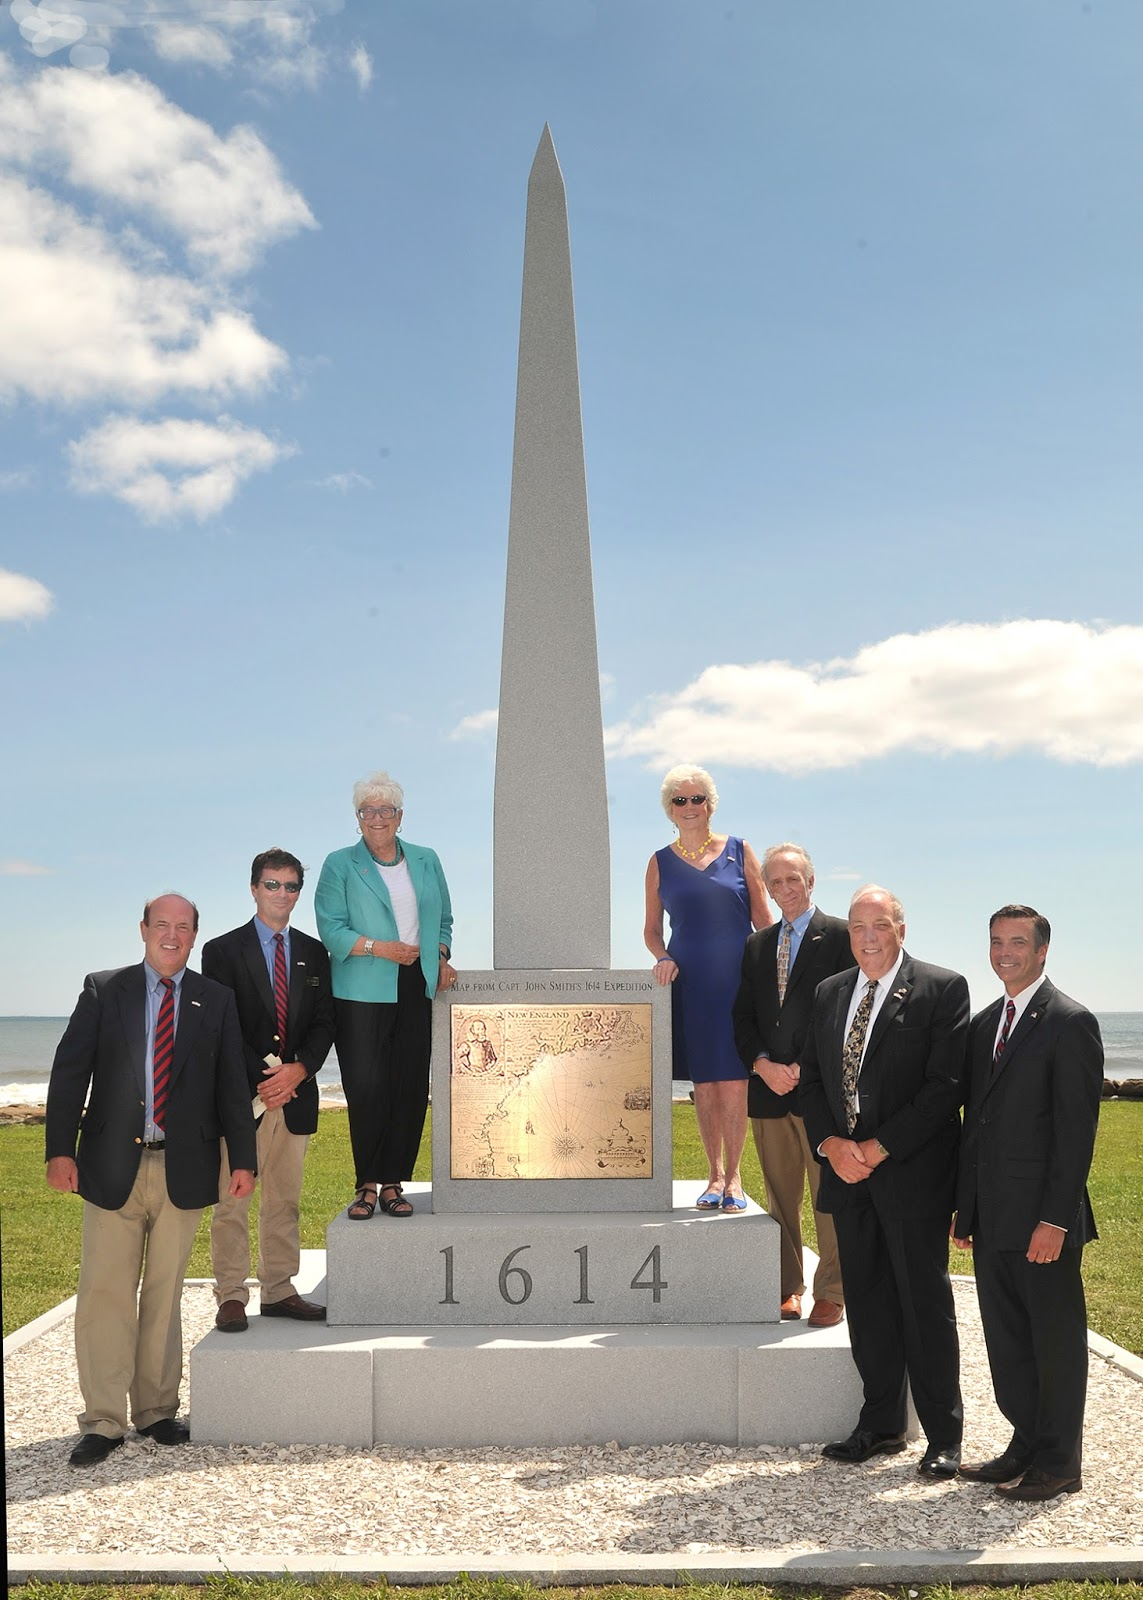 1614-monument-elected-officials-and-commissioners-photo.jpg